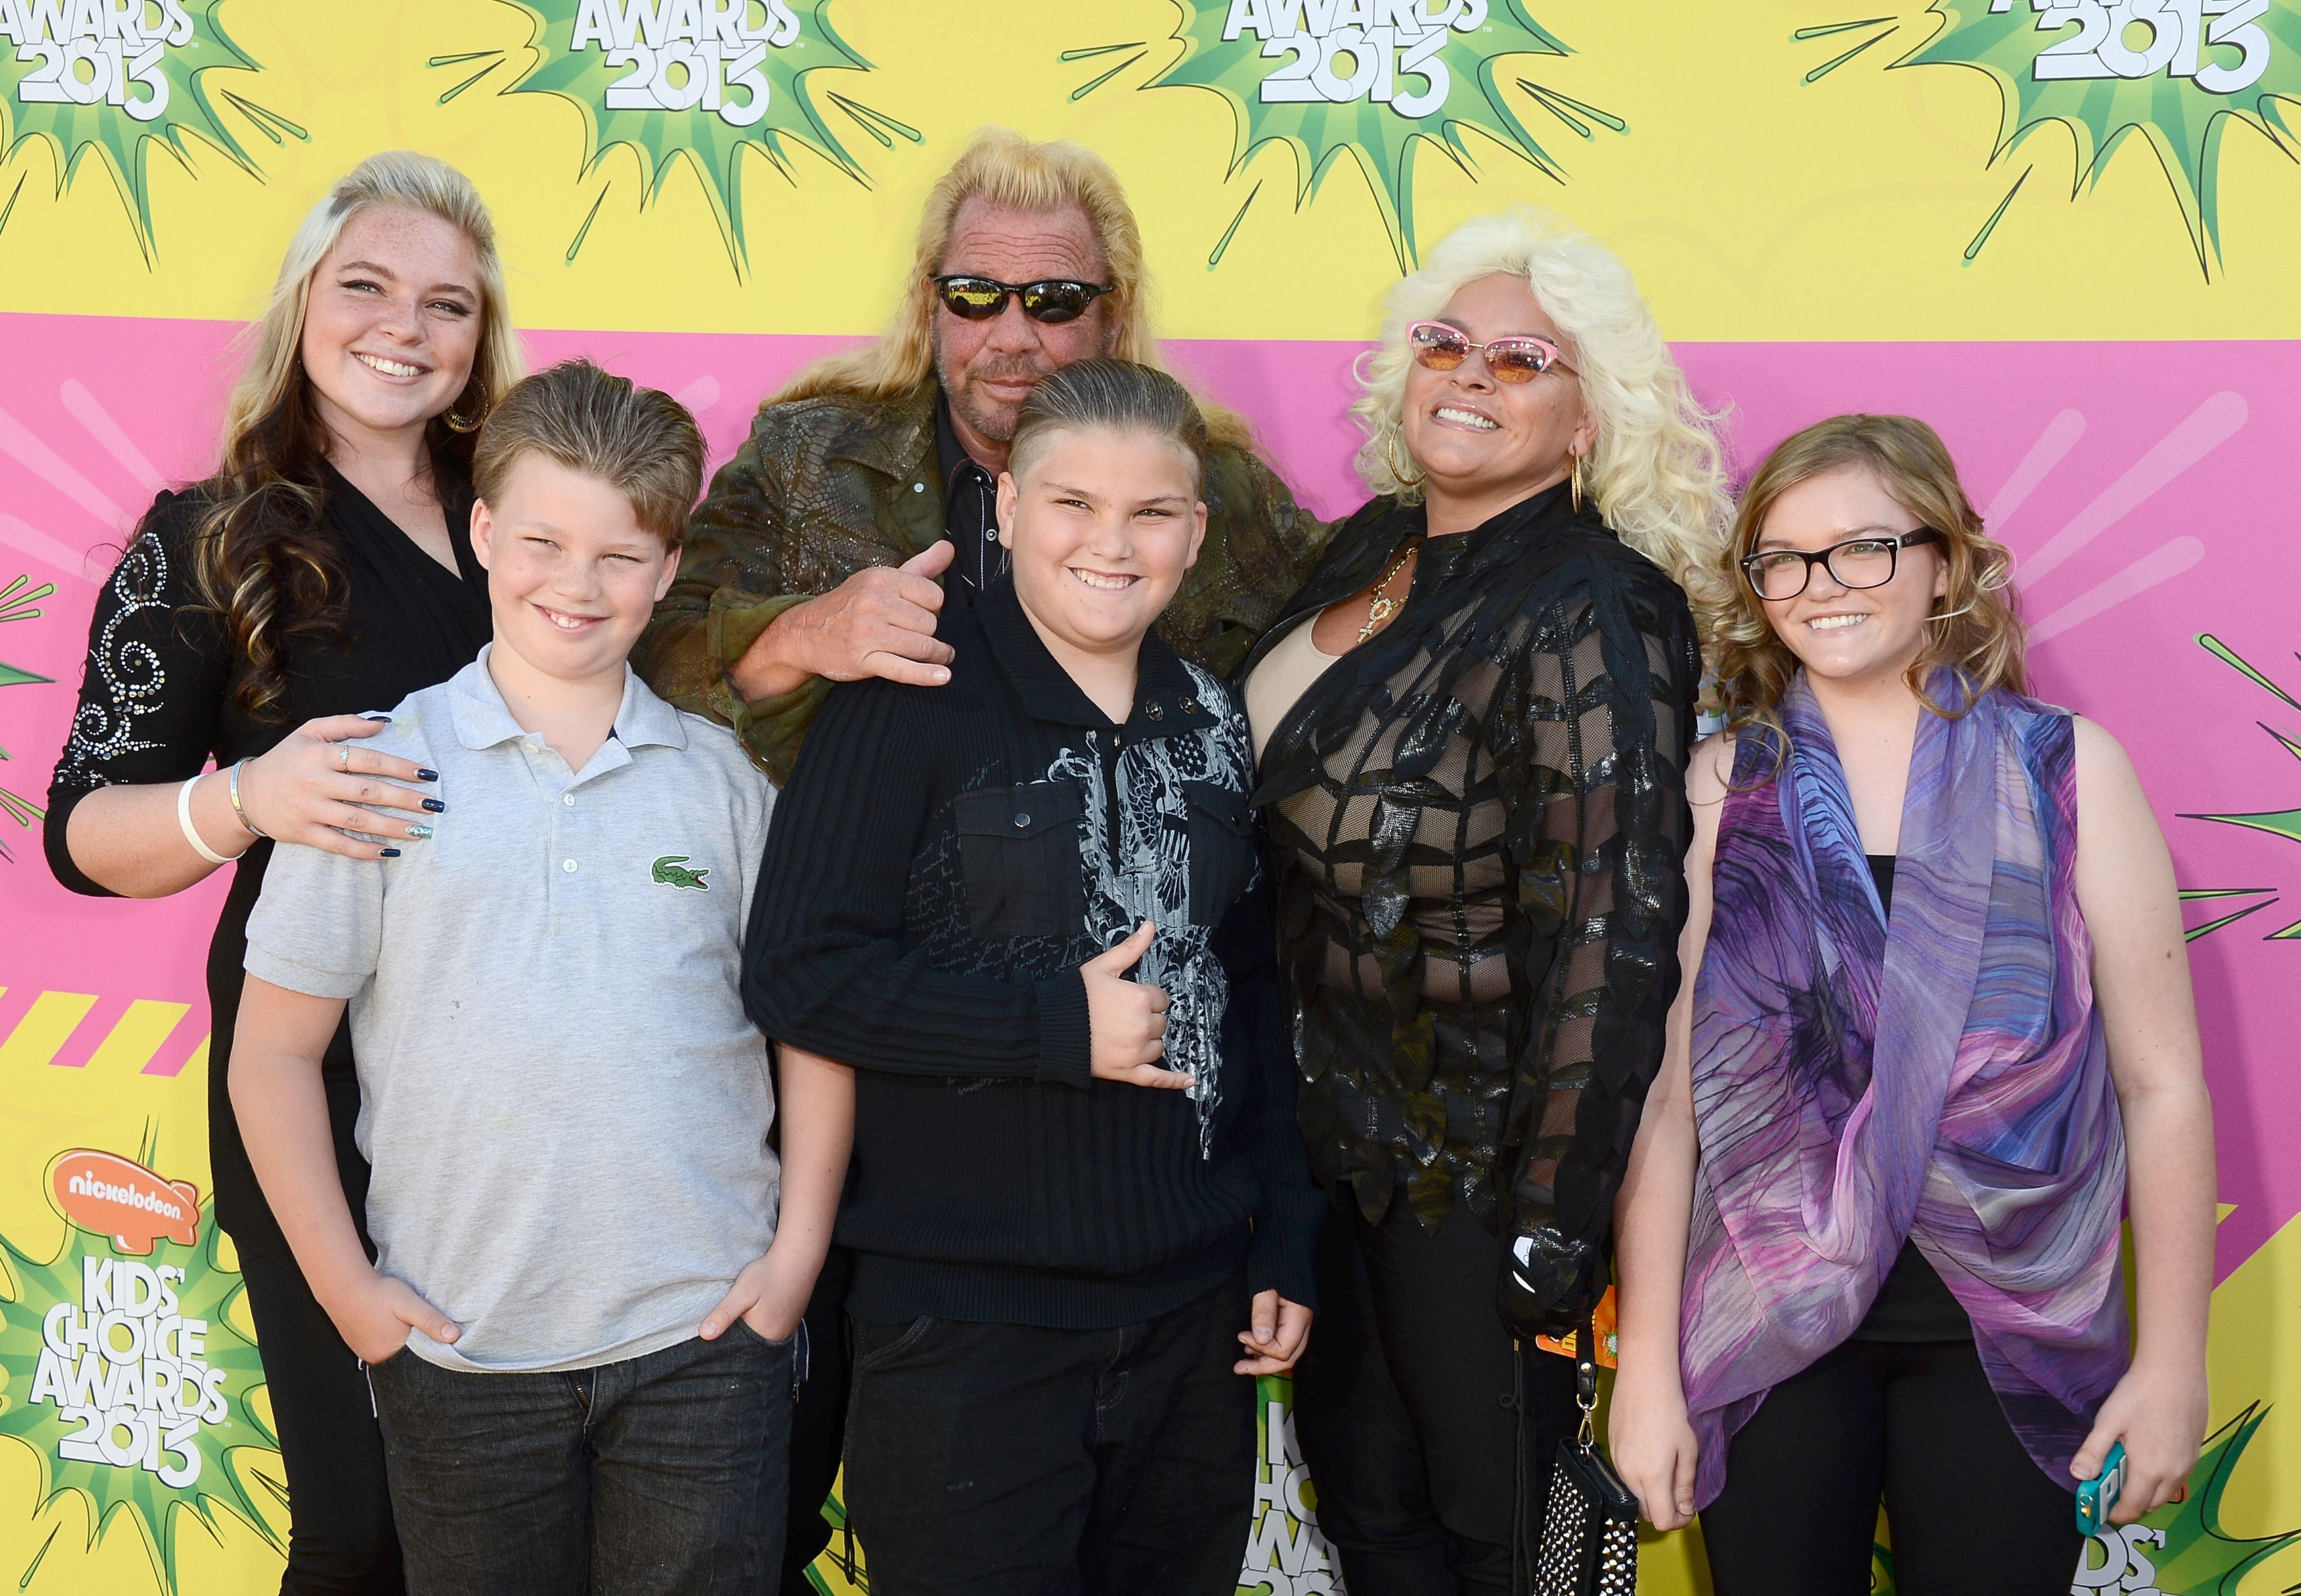 Duane Chapman, Beth Chapman, and their family during Nickelodeon's 26th Annual Kids' Choice Awards at USC Galen Center on March 23, 2013 in Los Angeles. | Source: Getty Images